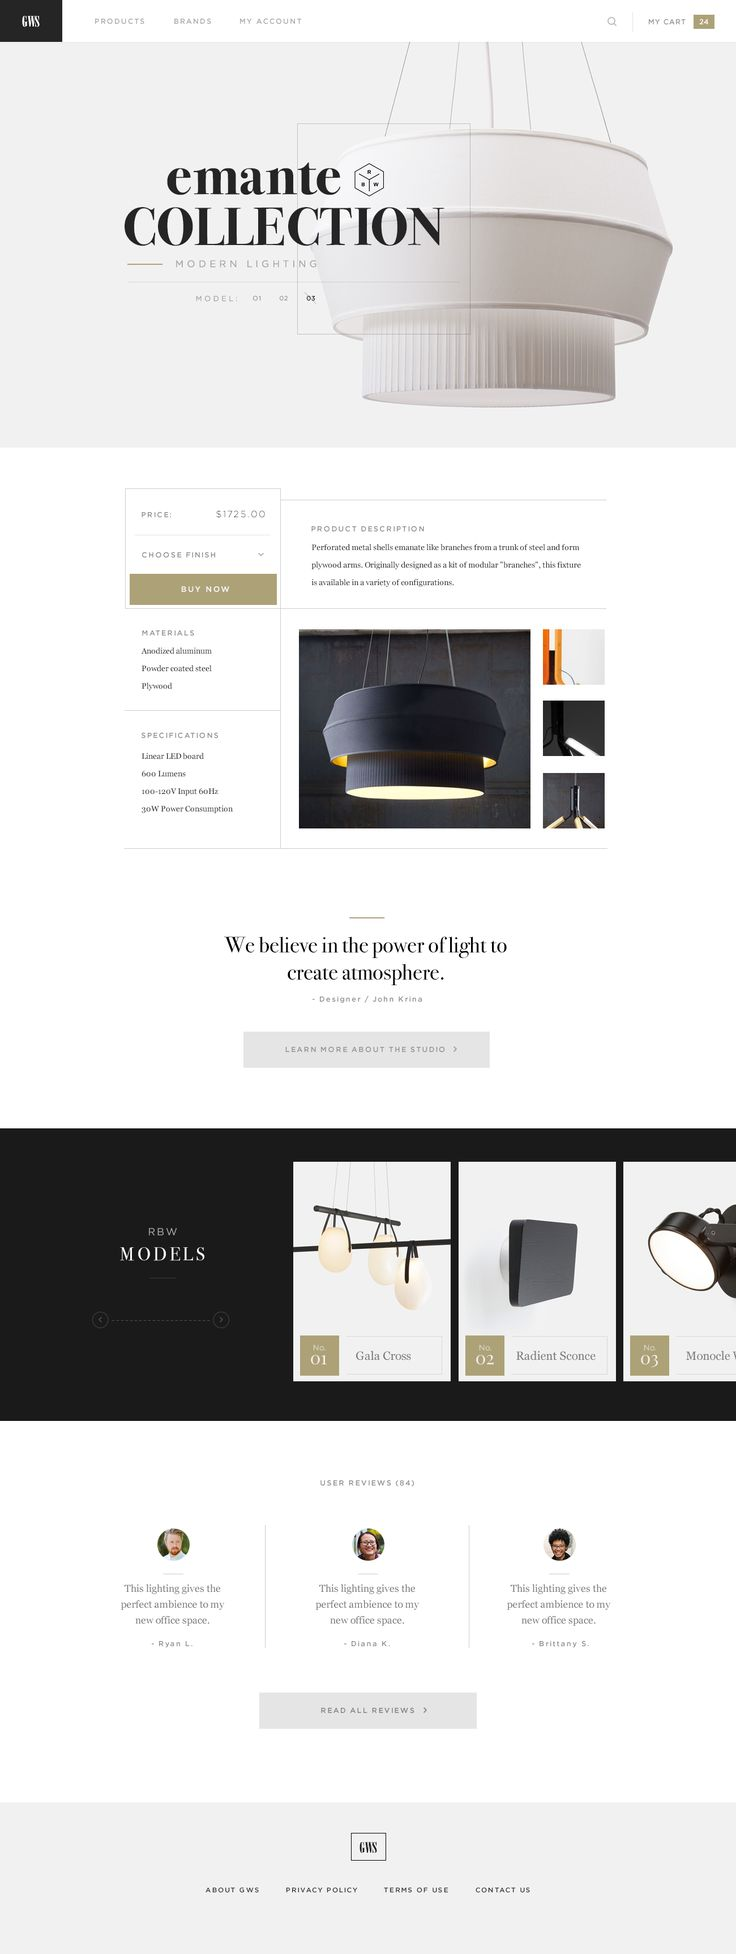 GWA Marketplace Concept // Hi Friends, look what I just found on #web #design! Make sure to follow us @moirestudiosjkt to see more pins like this | Moire Studios is a thriving website and graphic design studio based in Jakarta, Indonesia.